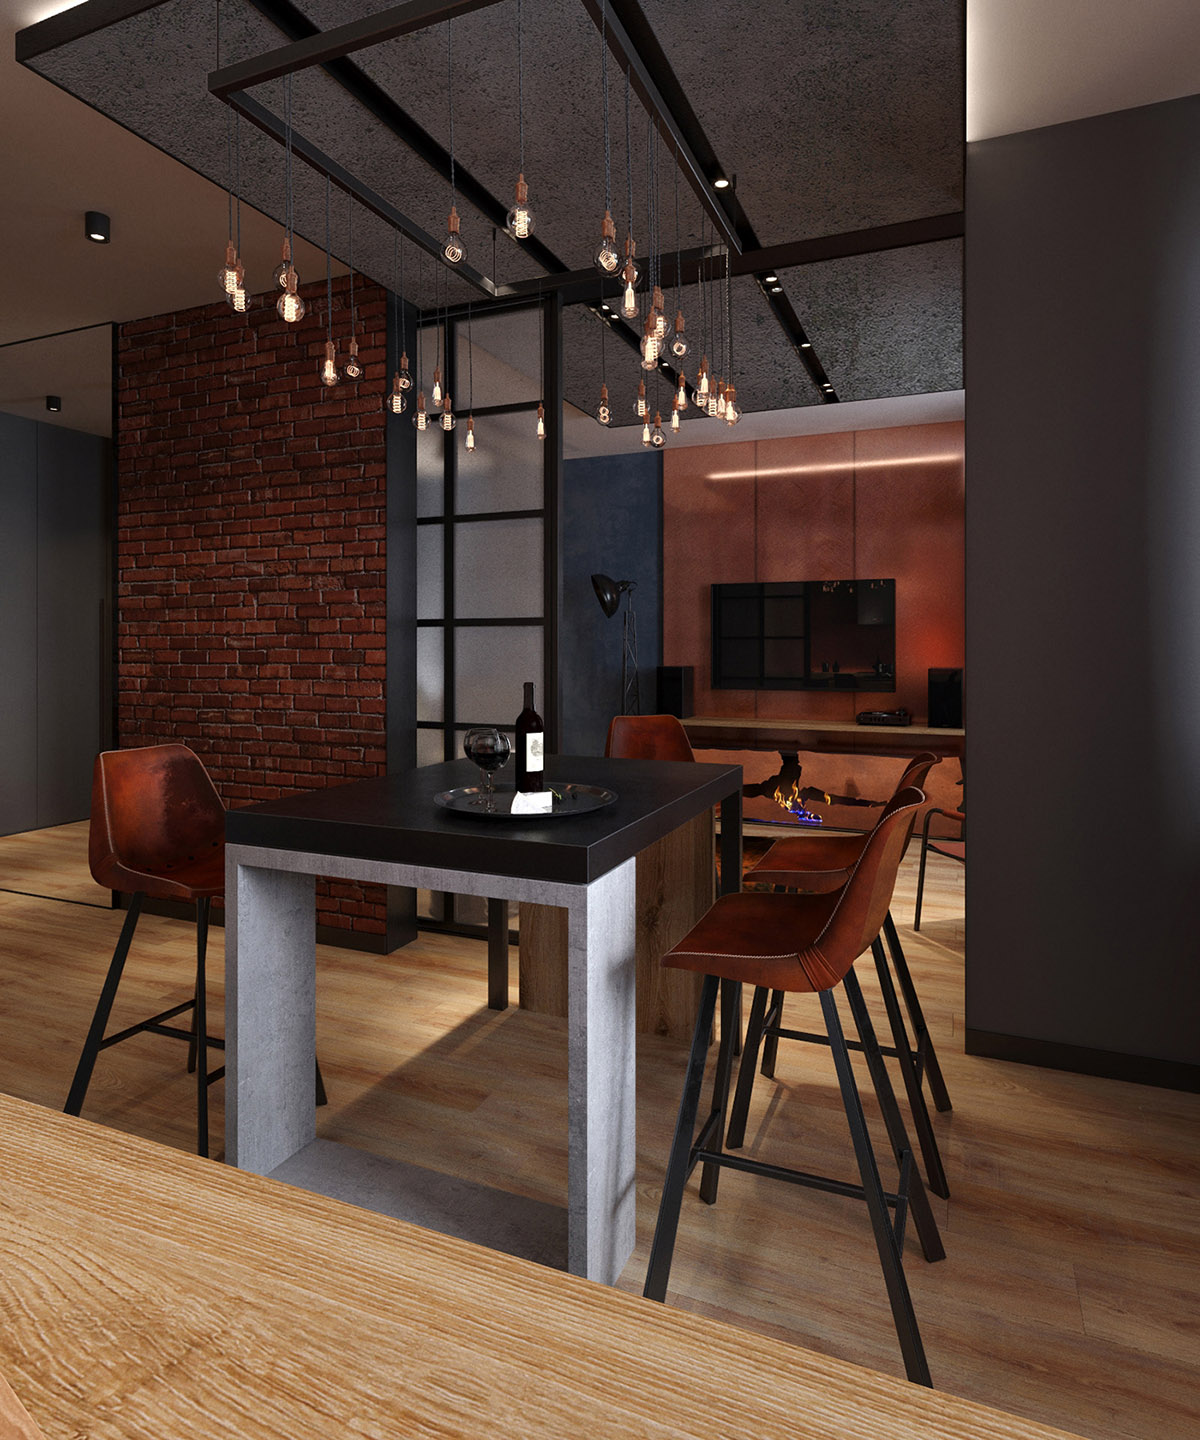 Industrial Chic Lighting 4 Apartments That Turn Up The Dial On Industrial Style